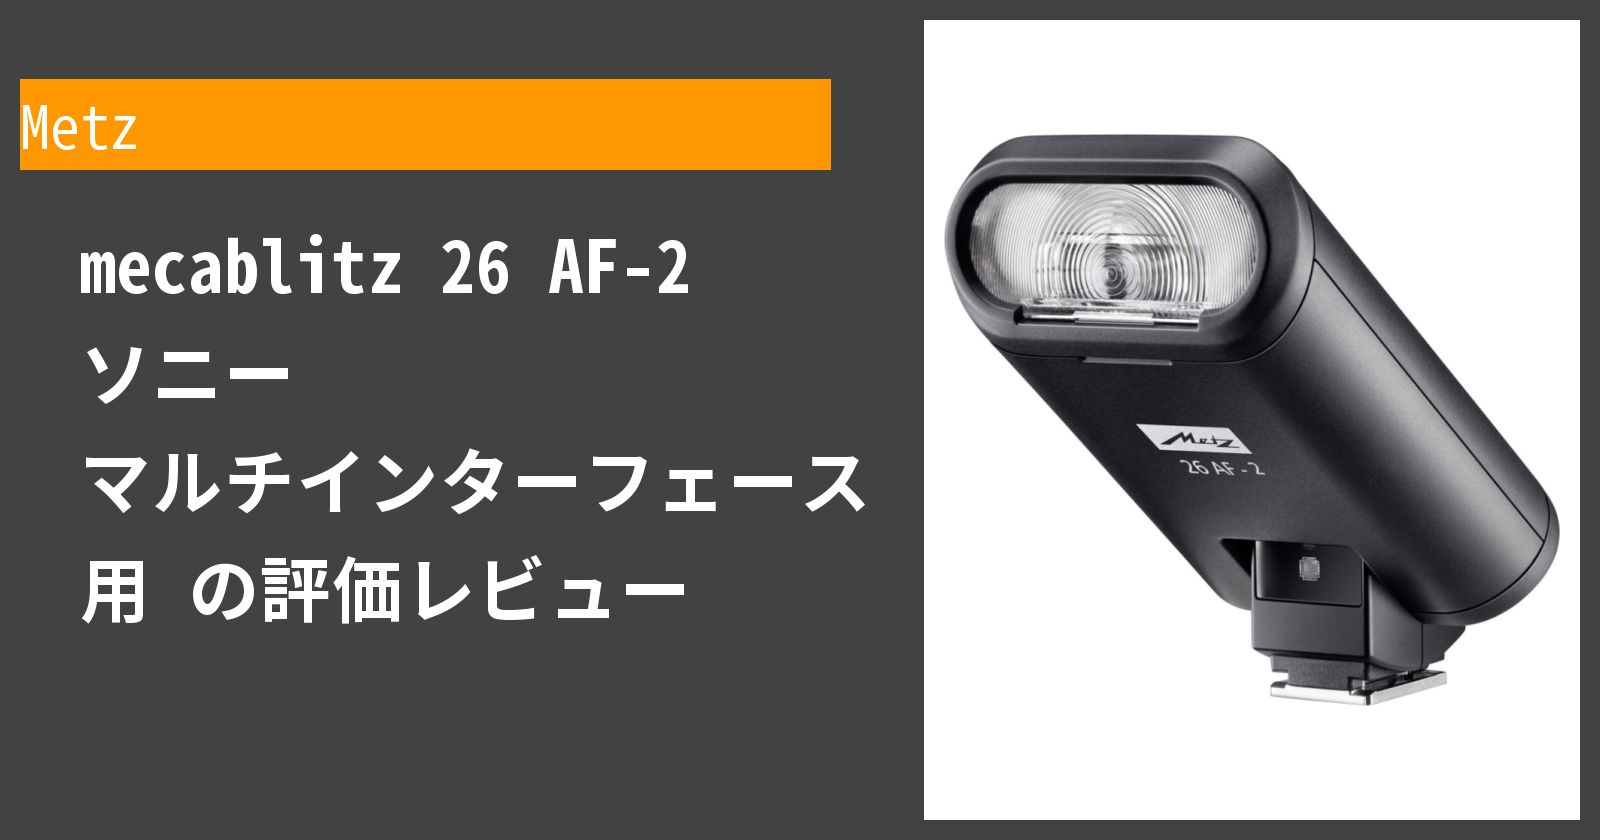 mecablitz 26 AF-2 ソニー マルチインターフェース用を徹底評価